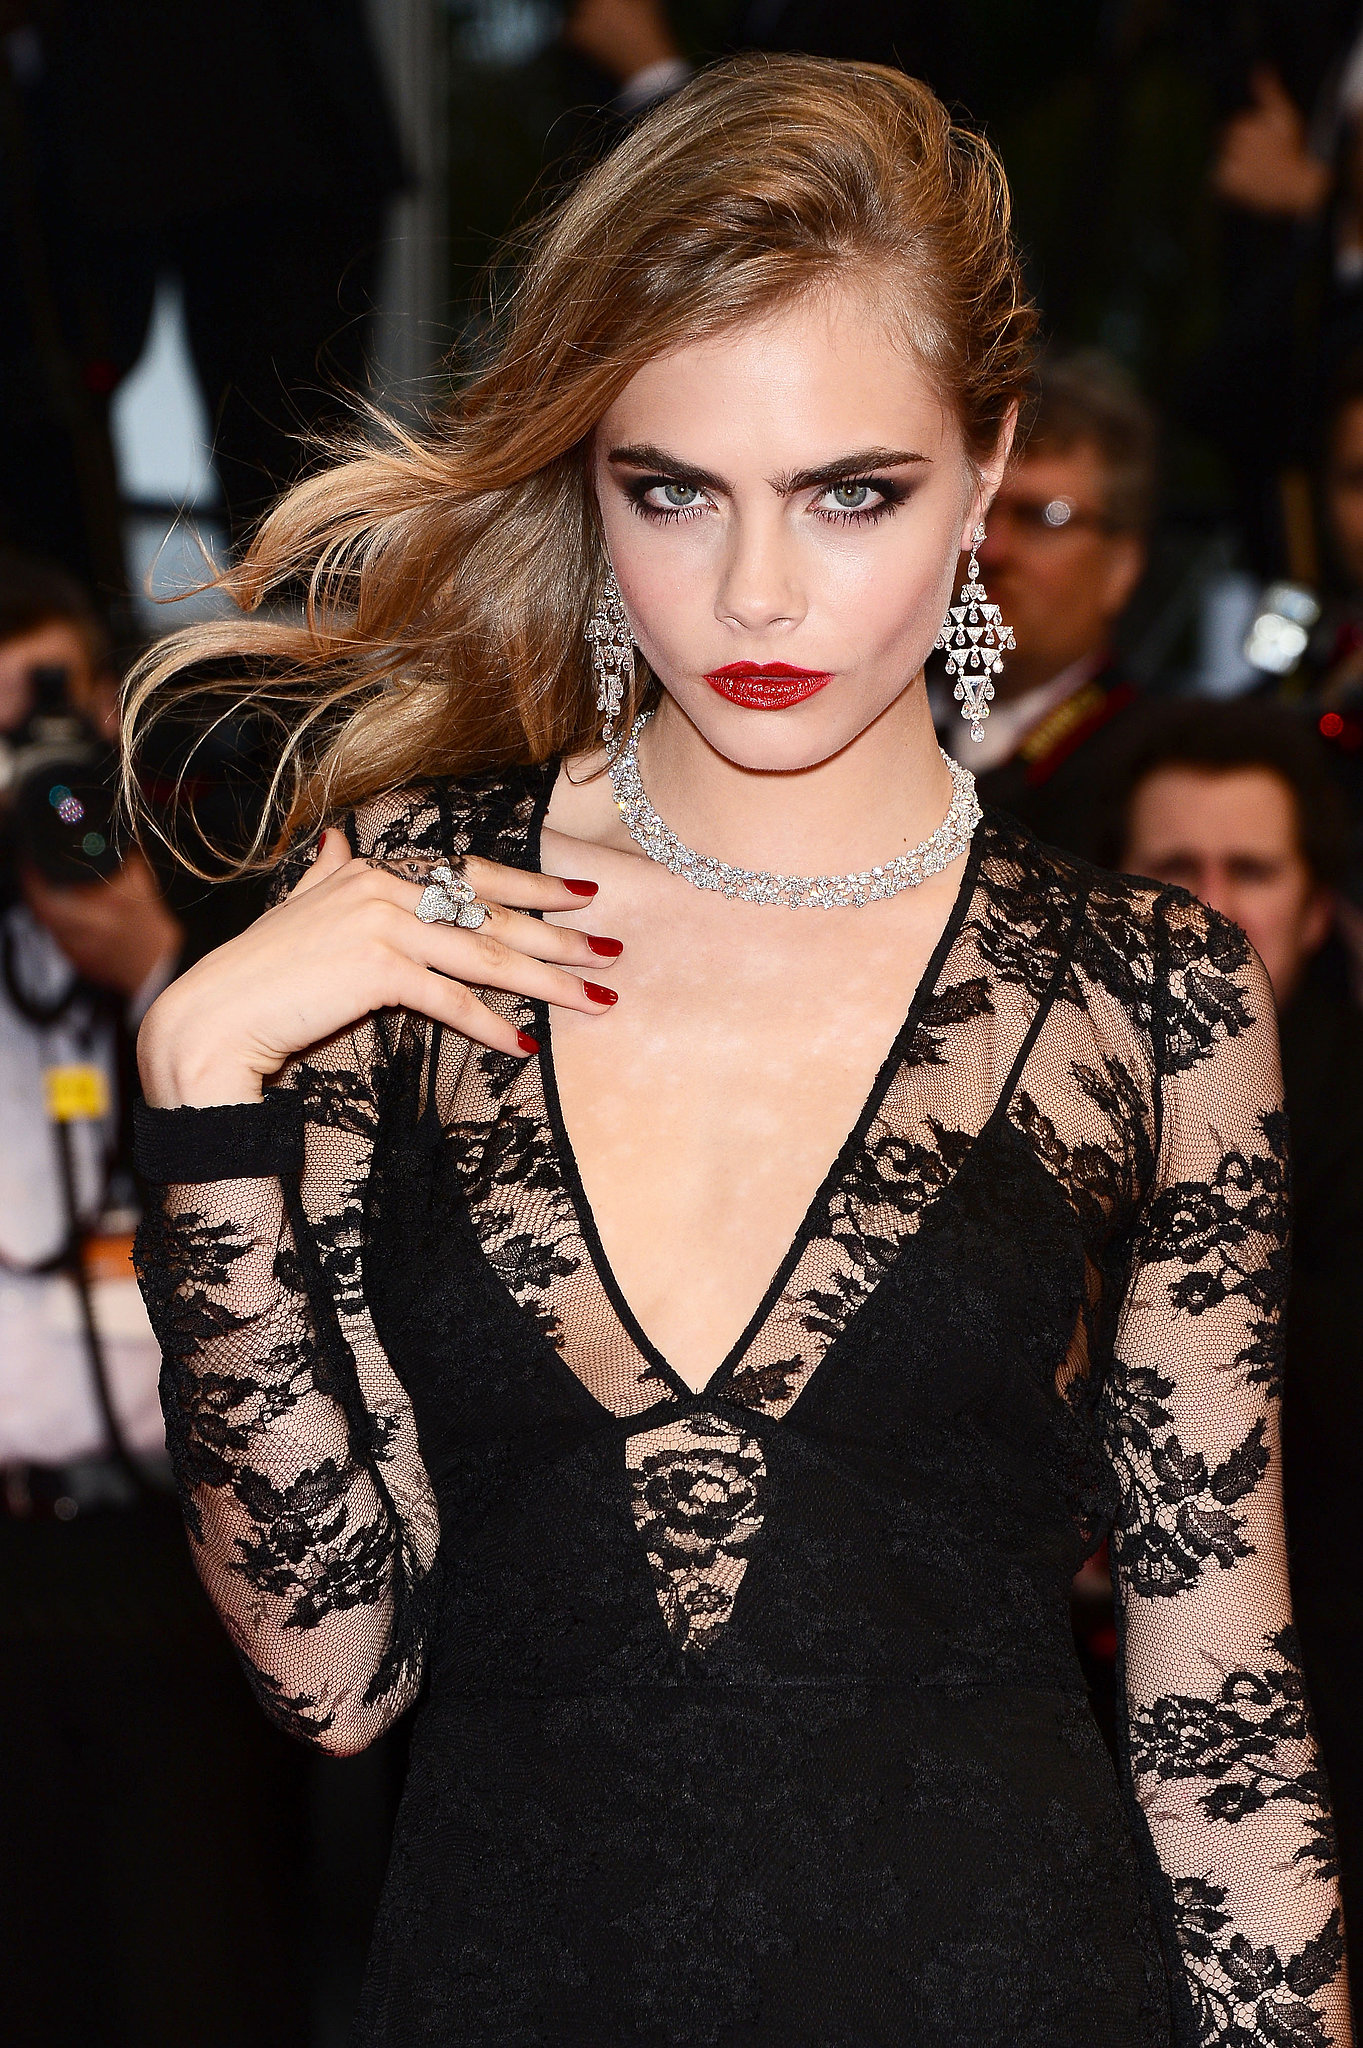 Cara Delevingne matched her deep-red lipstick with a brick-red nail polish for a supersultry combination.